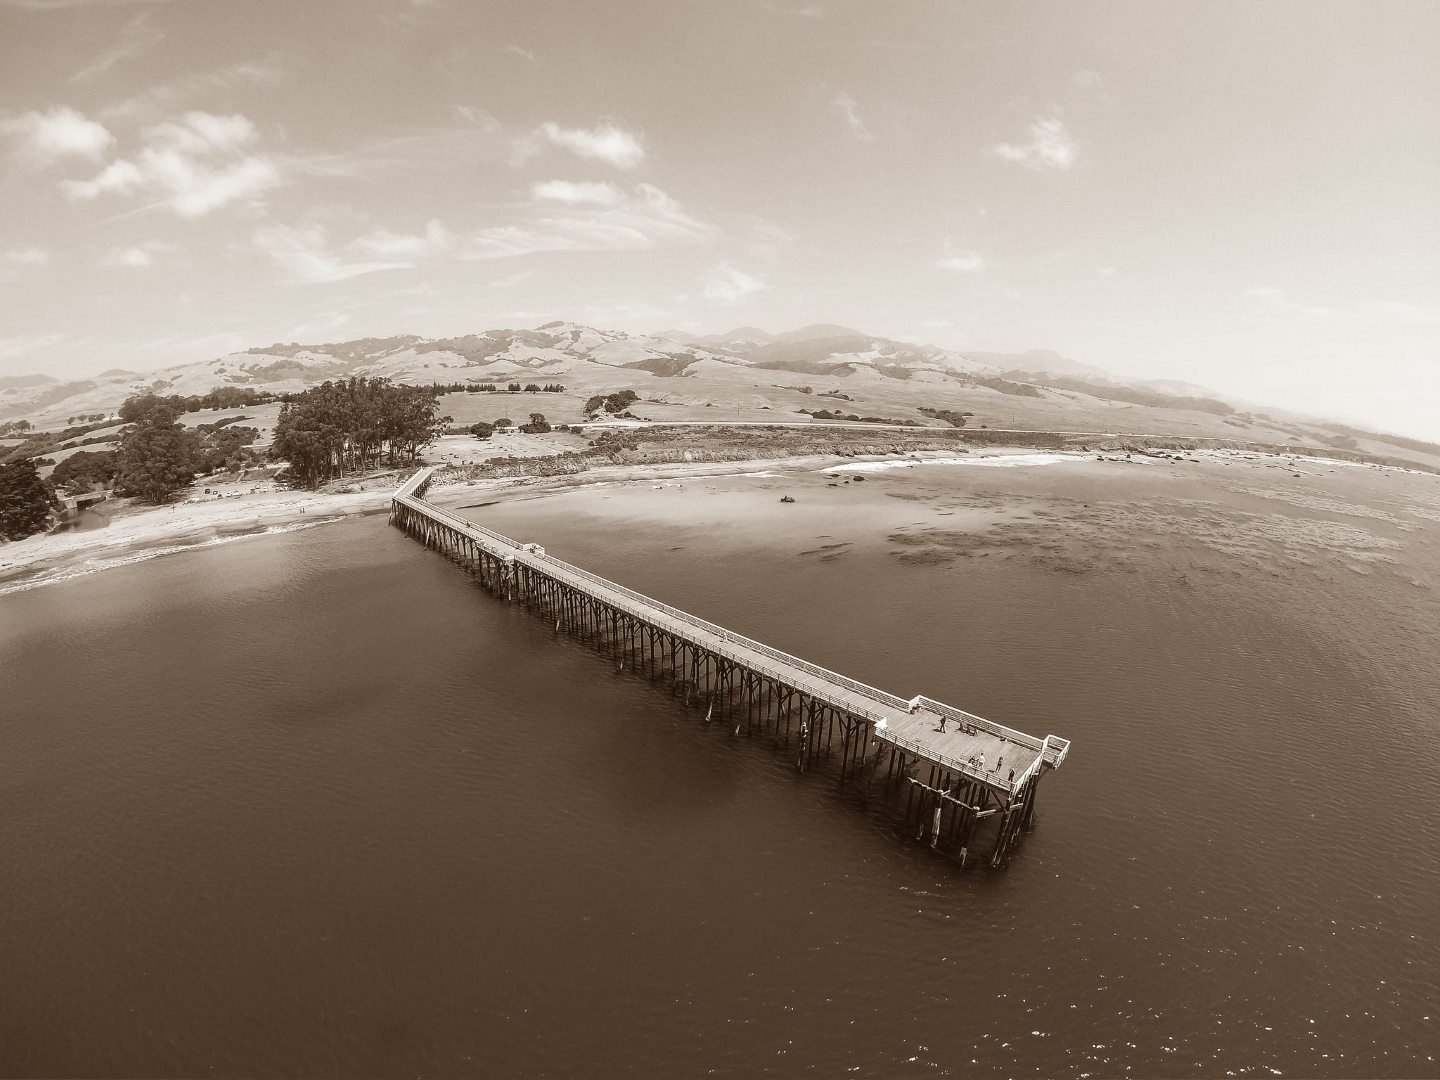 San Simeon Pier was an original whaling station in San Simeon, CA.